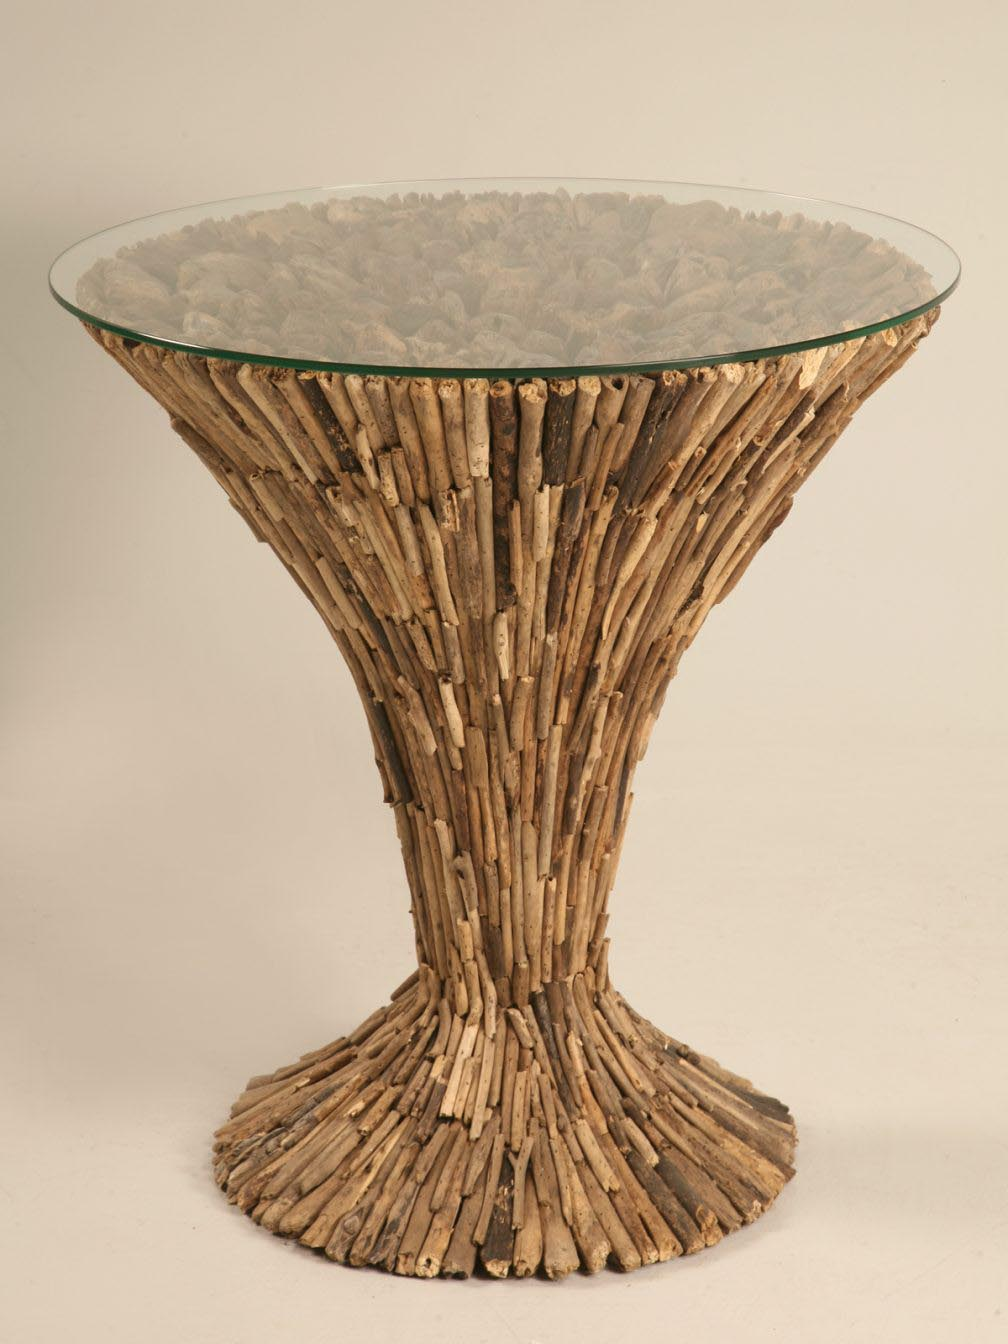 Pedestal Bases For Coffee Tables Table Design Ideas